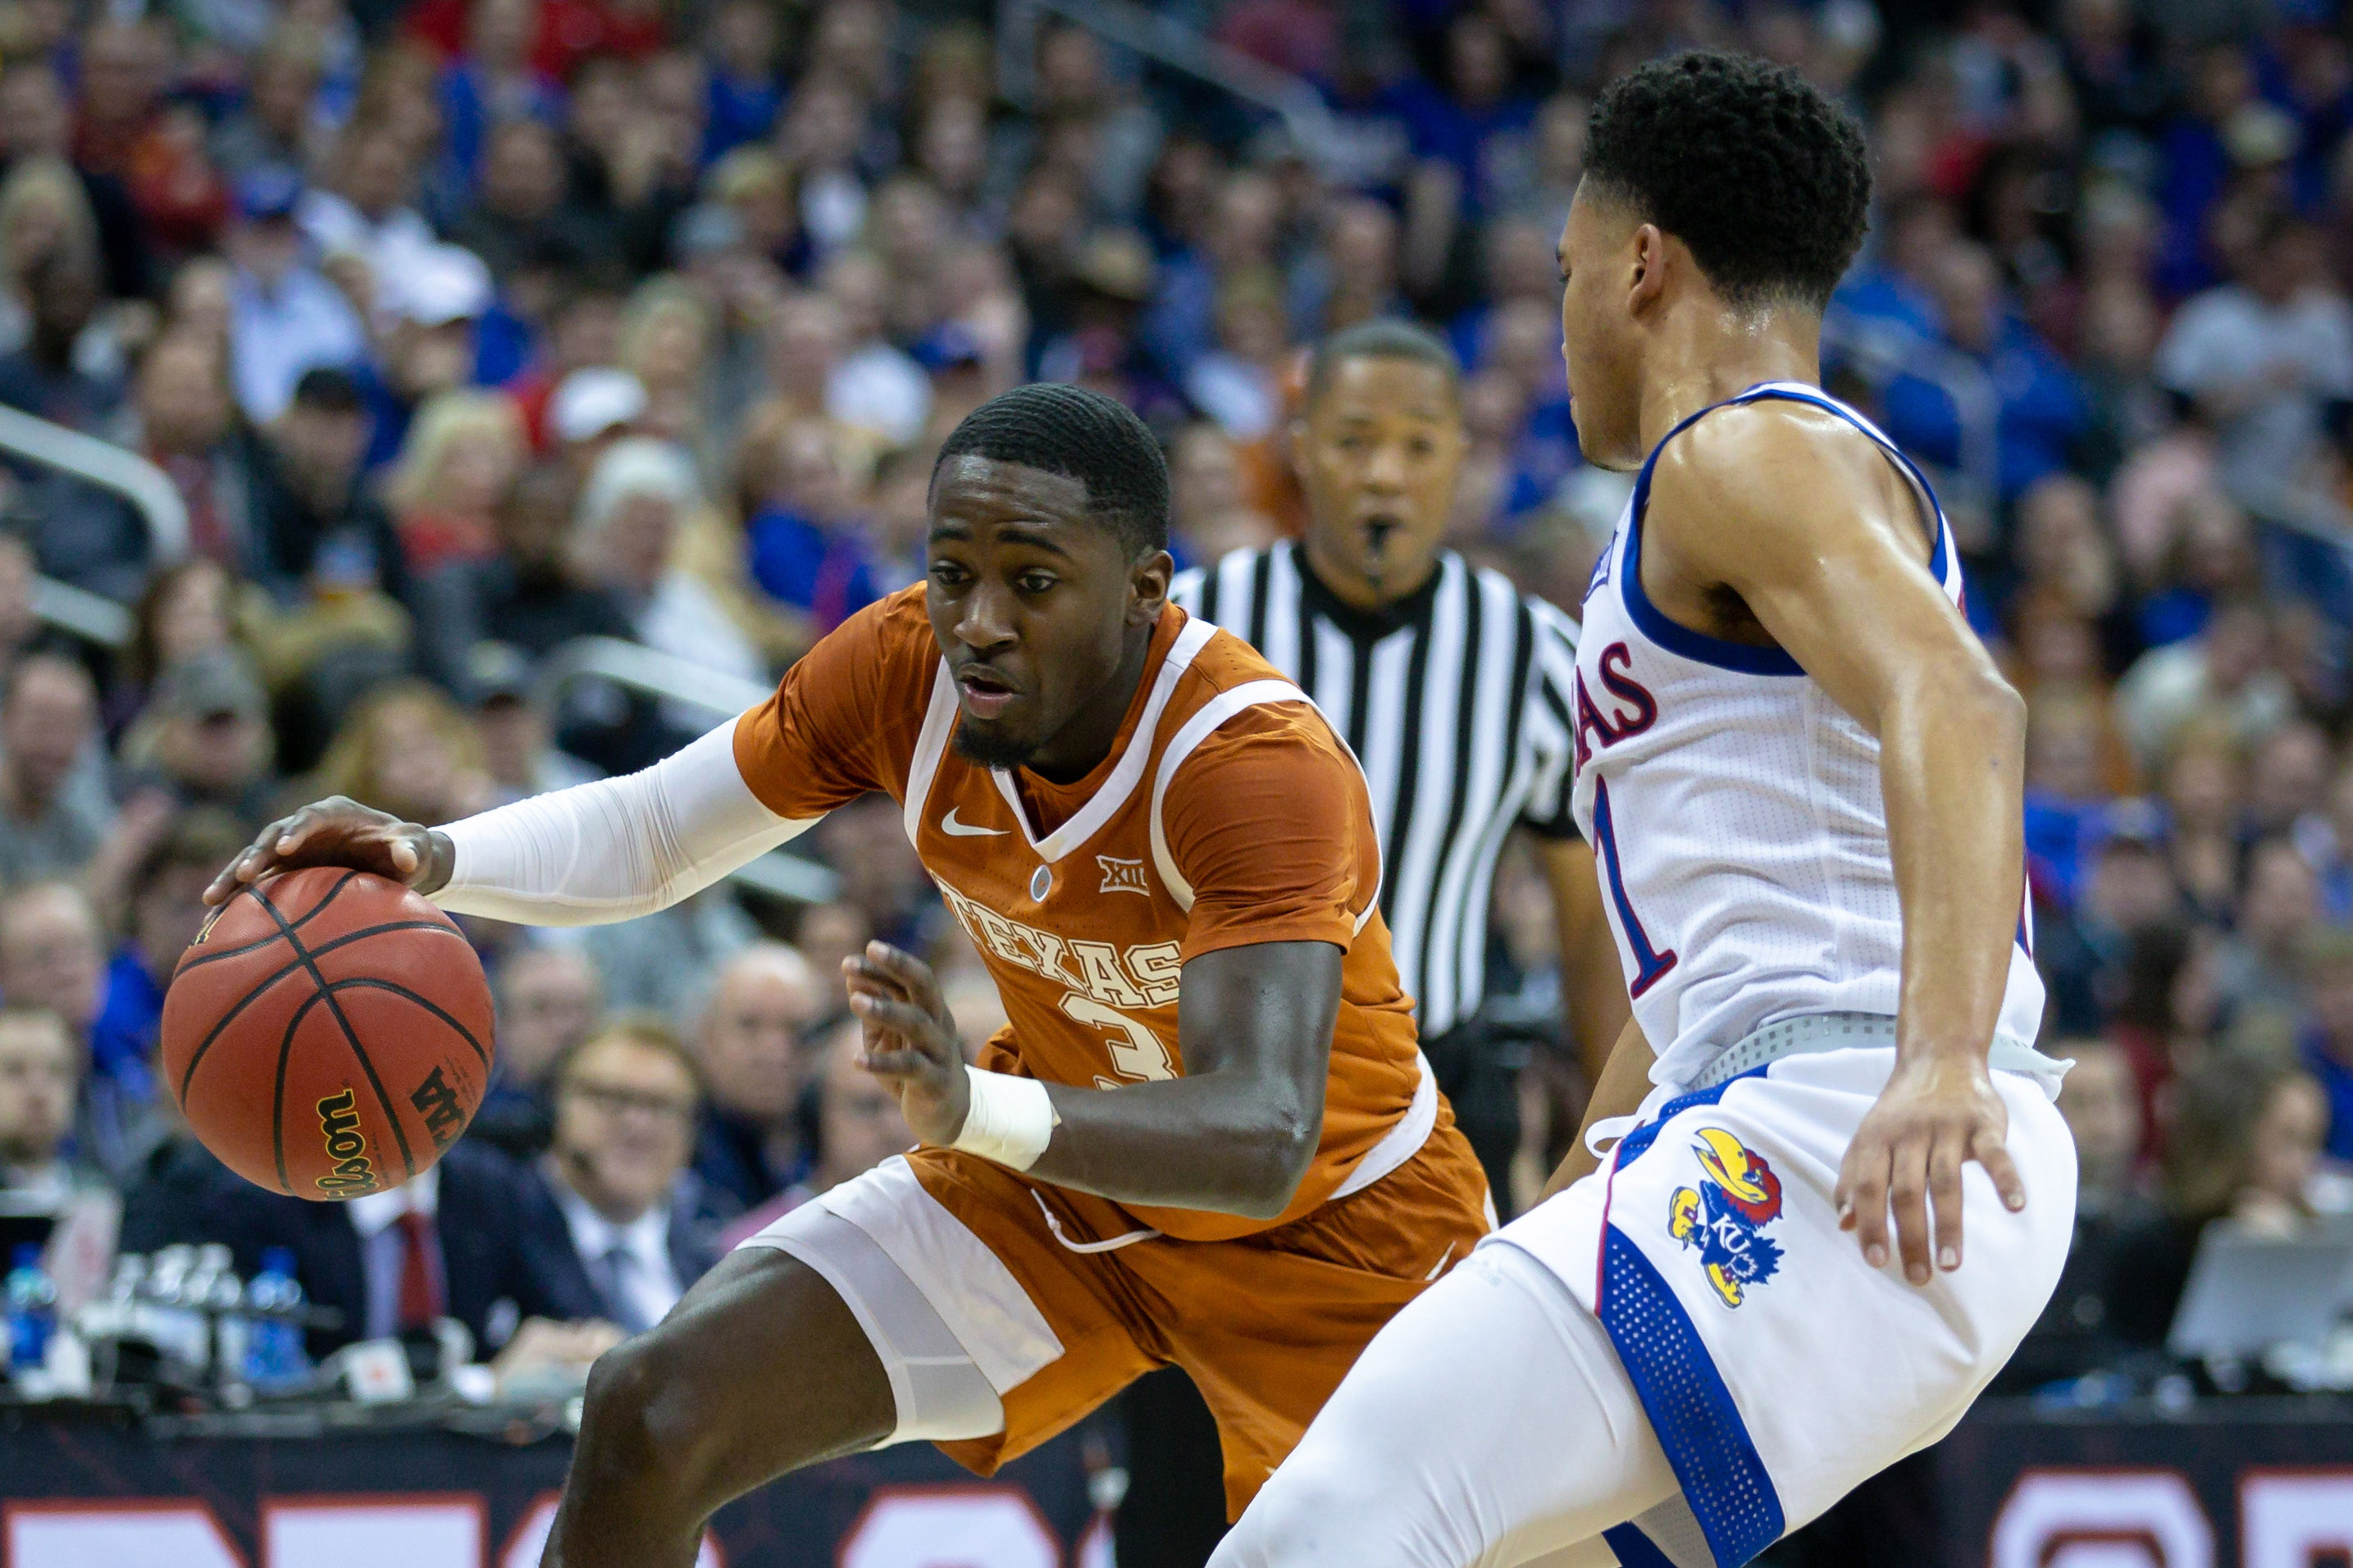 NCAA Basketball: Big 12 Conference Tournament-Kansas vs. Texas